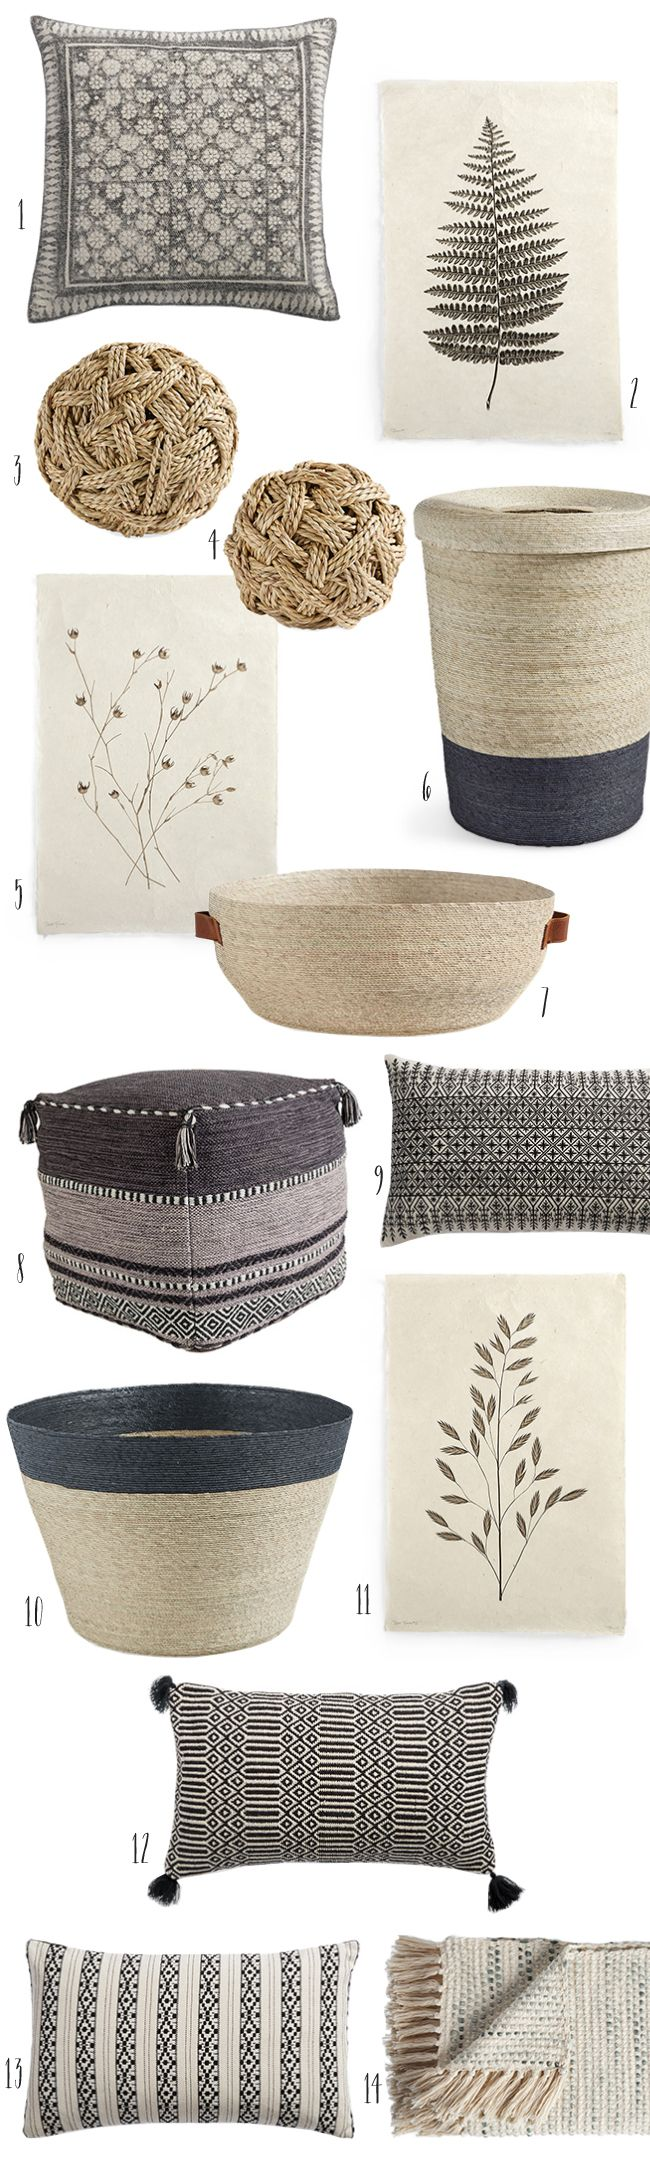 How to Bring on the Cozy with Textures (and a $500 giveaway!)